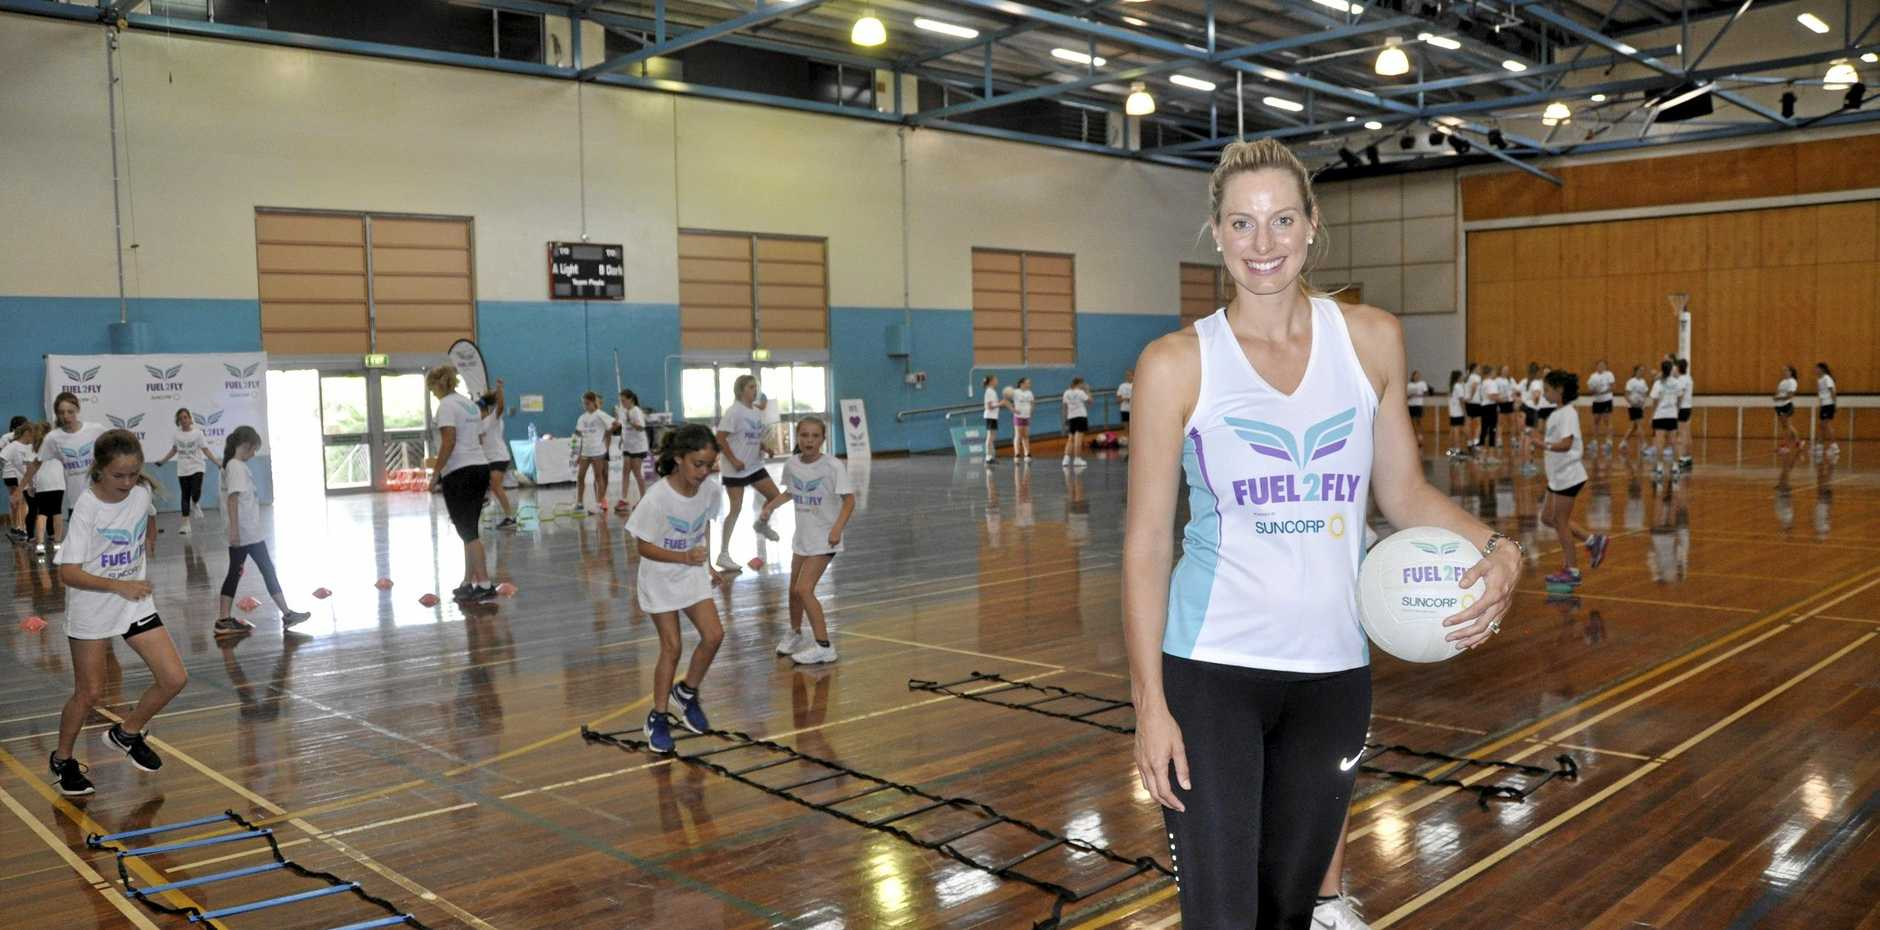 ON COURT: Former Queensland Firebirds and Australian Diamonds star Laura Geitz passed on some of her knowledge to young netballers during the Fuel2Fly netball clinic conducted at St Ursula's College earlier this week.